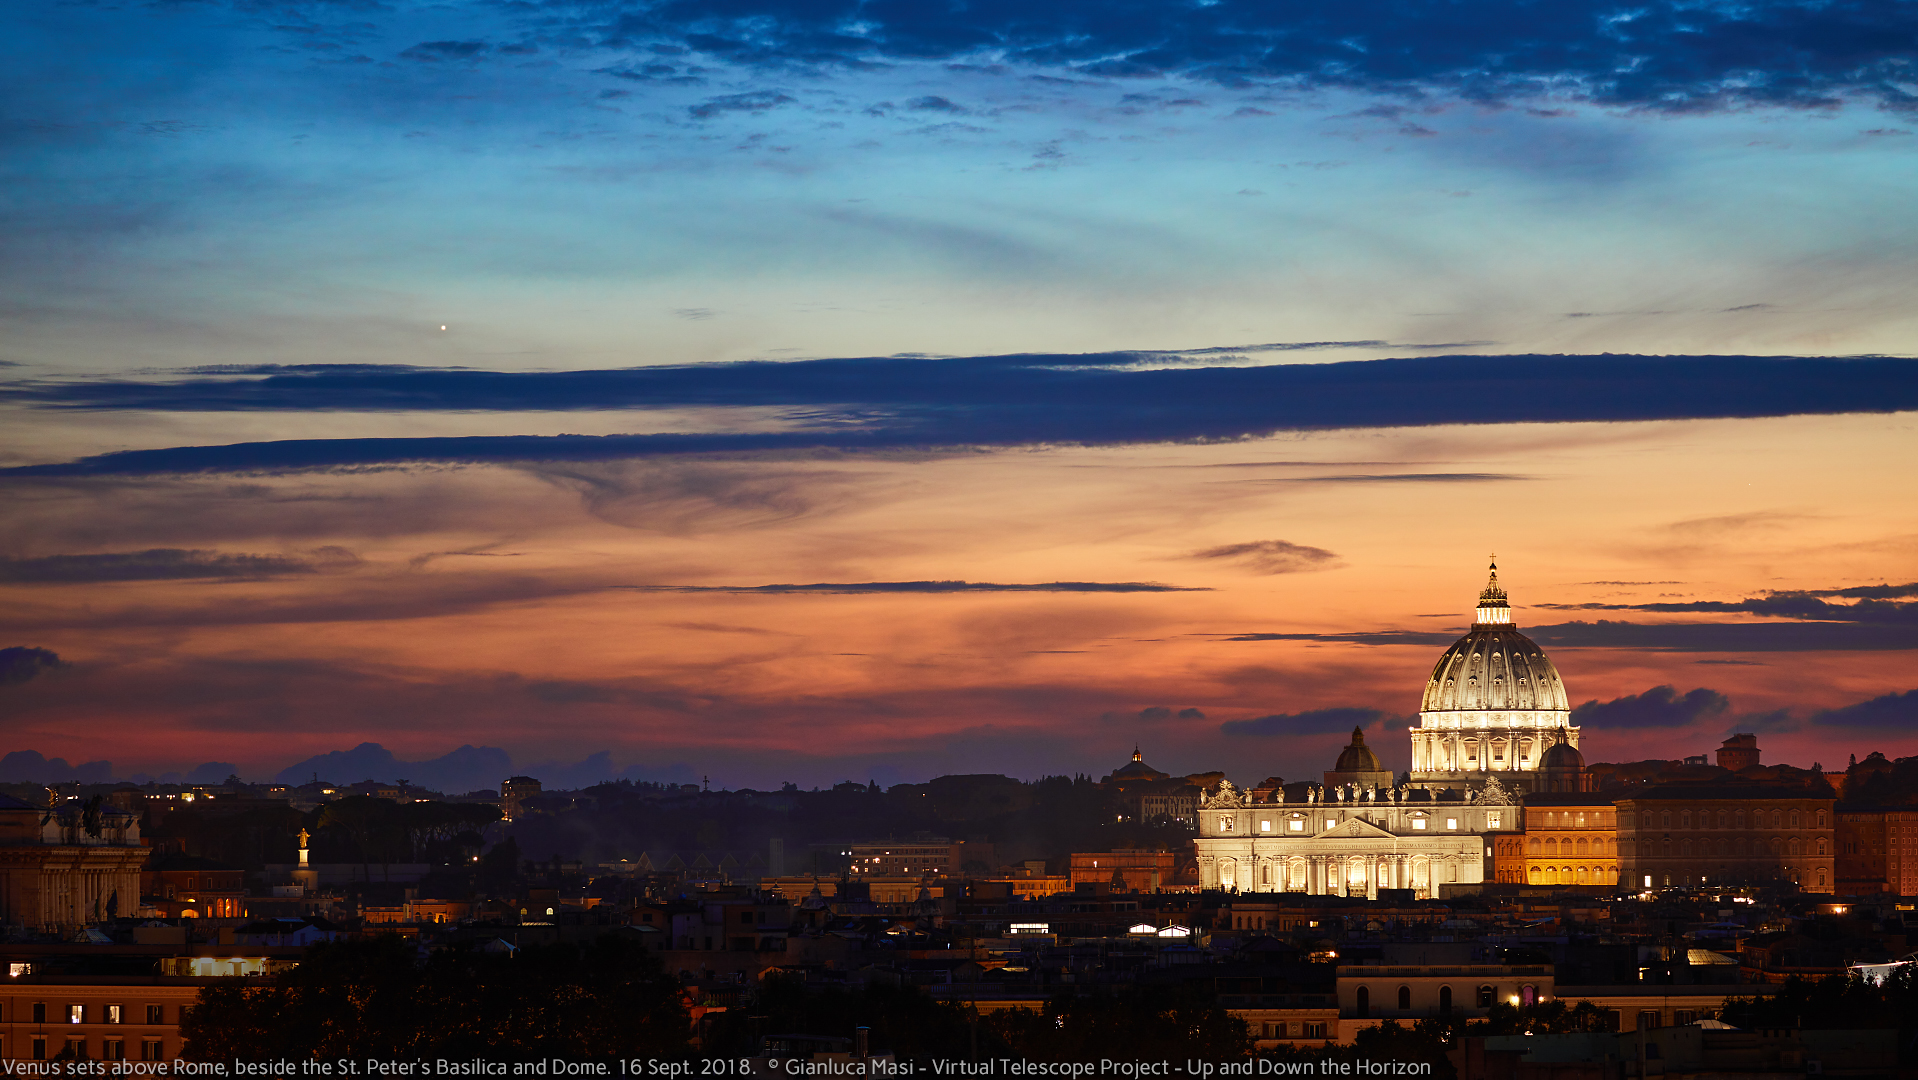 Venus approaches the St. Peter's Dome and Basilica before setting - 16 Sept. 2018